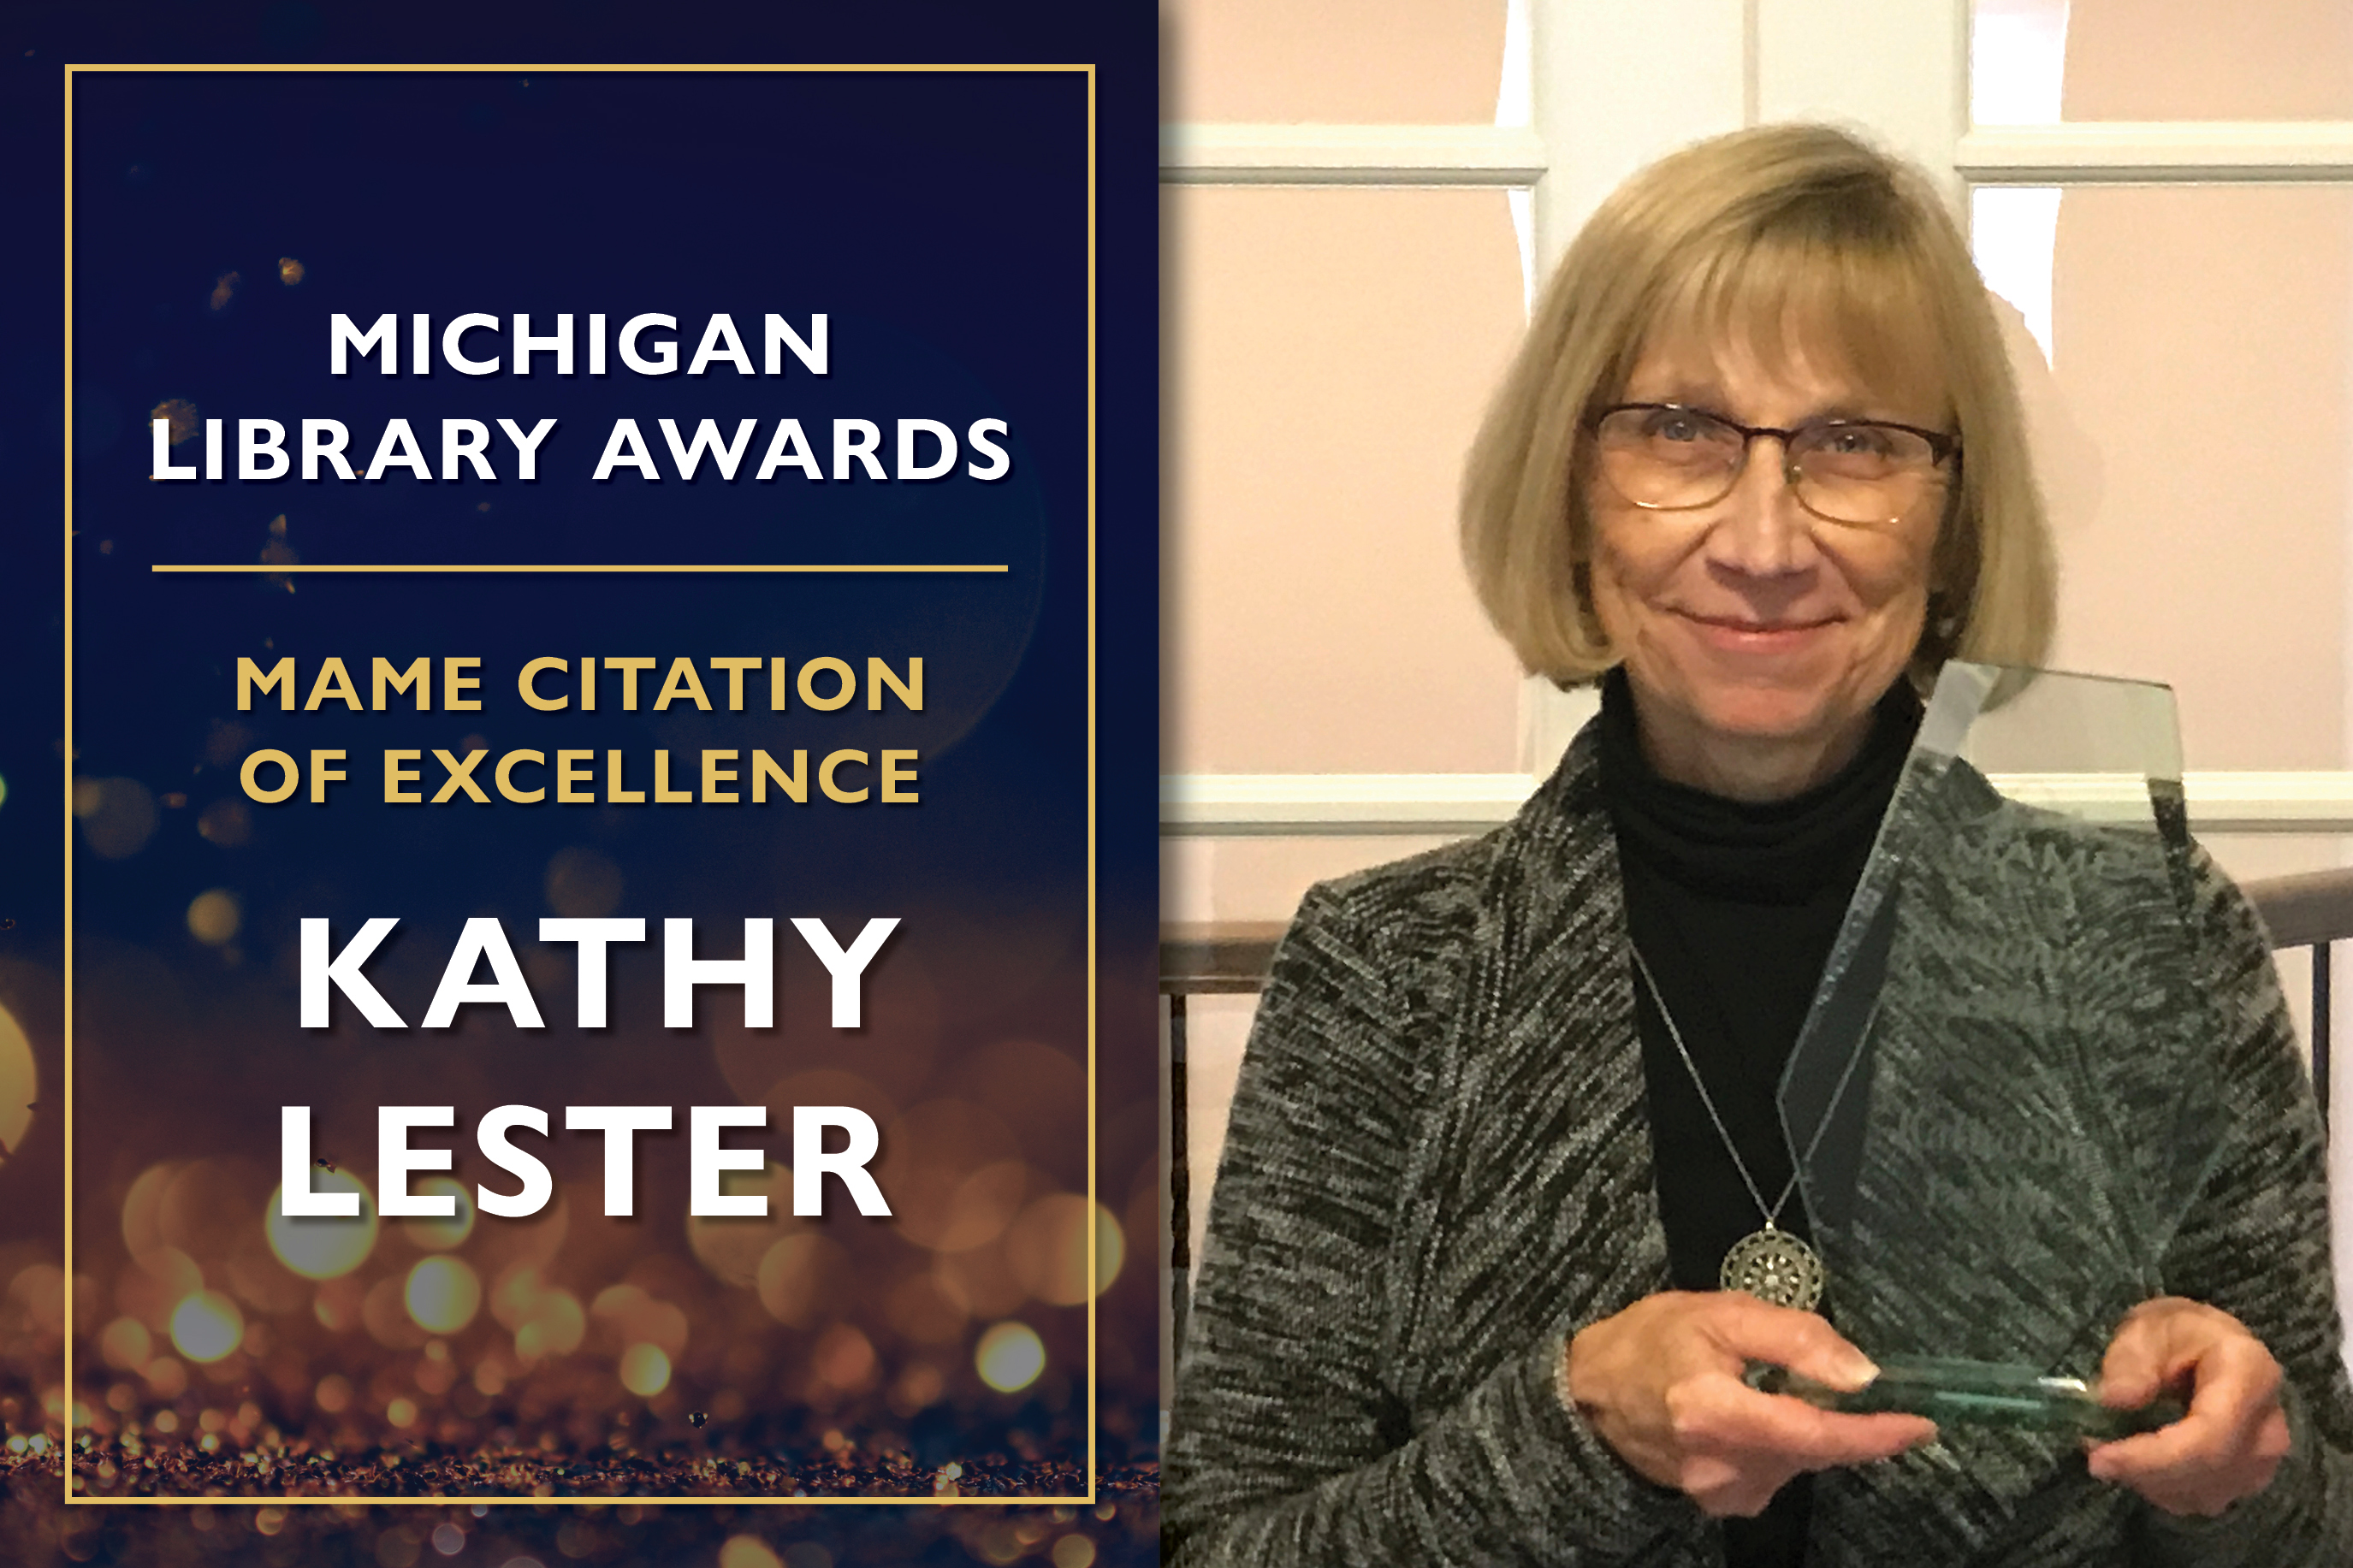 Citation of Excellence  Kathy Lester, Advocacy Chair of the Michigan Association of Media in Education